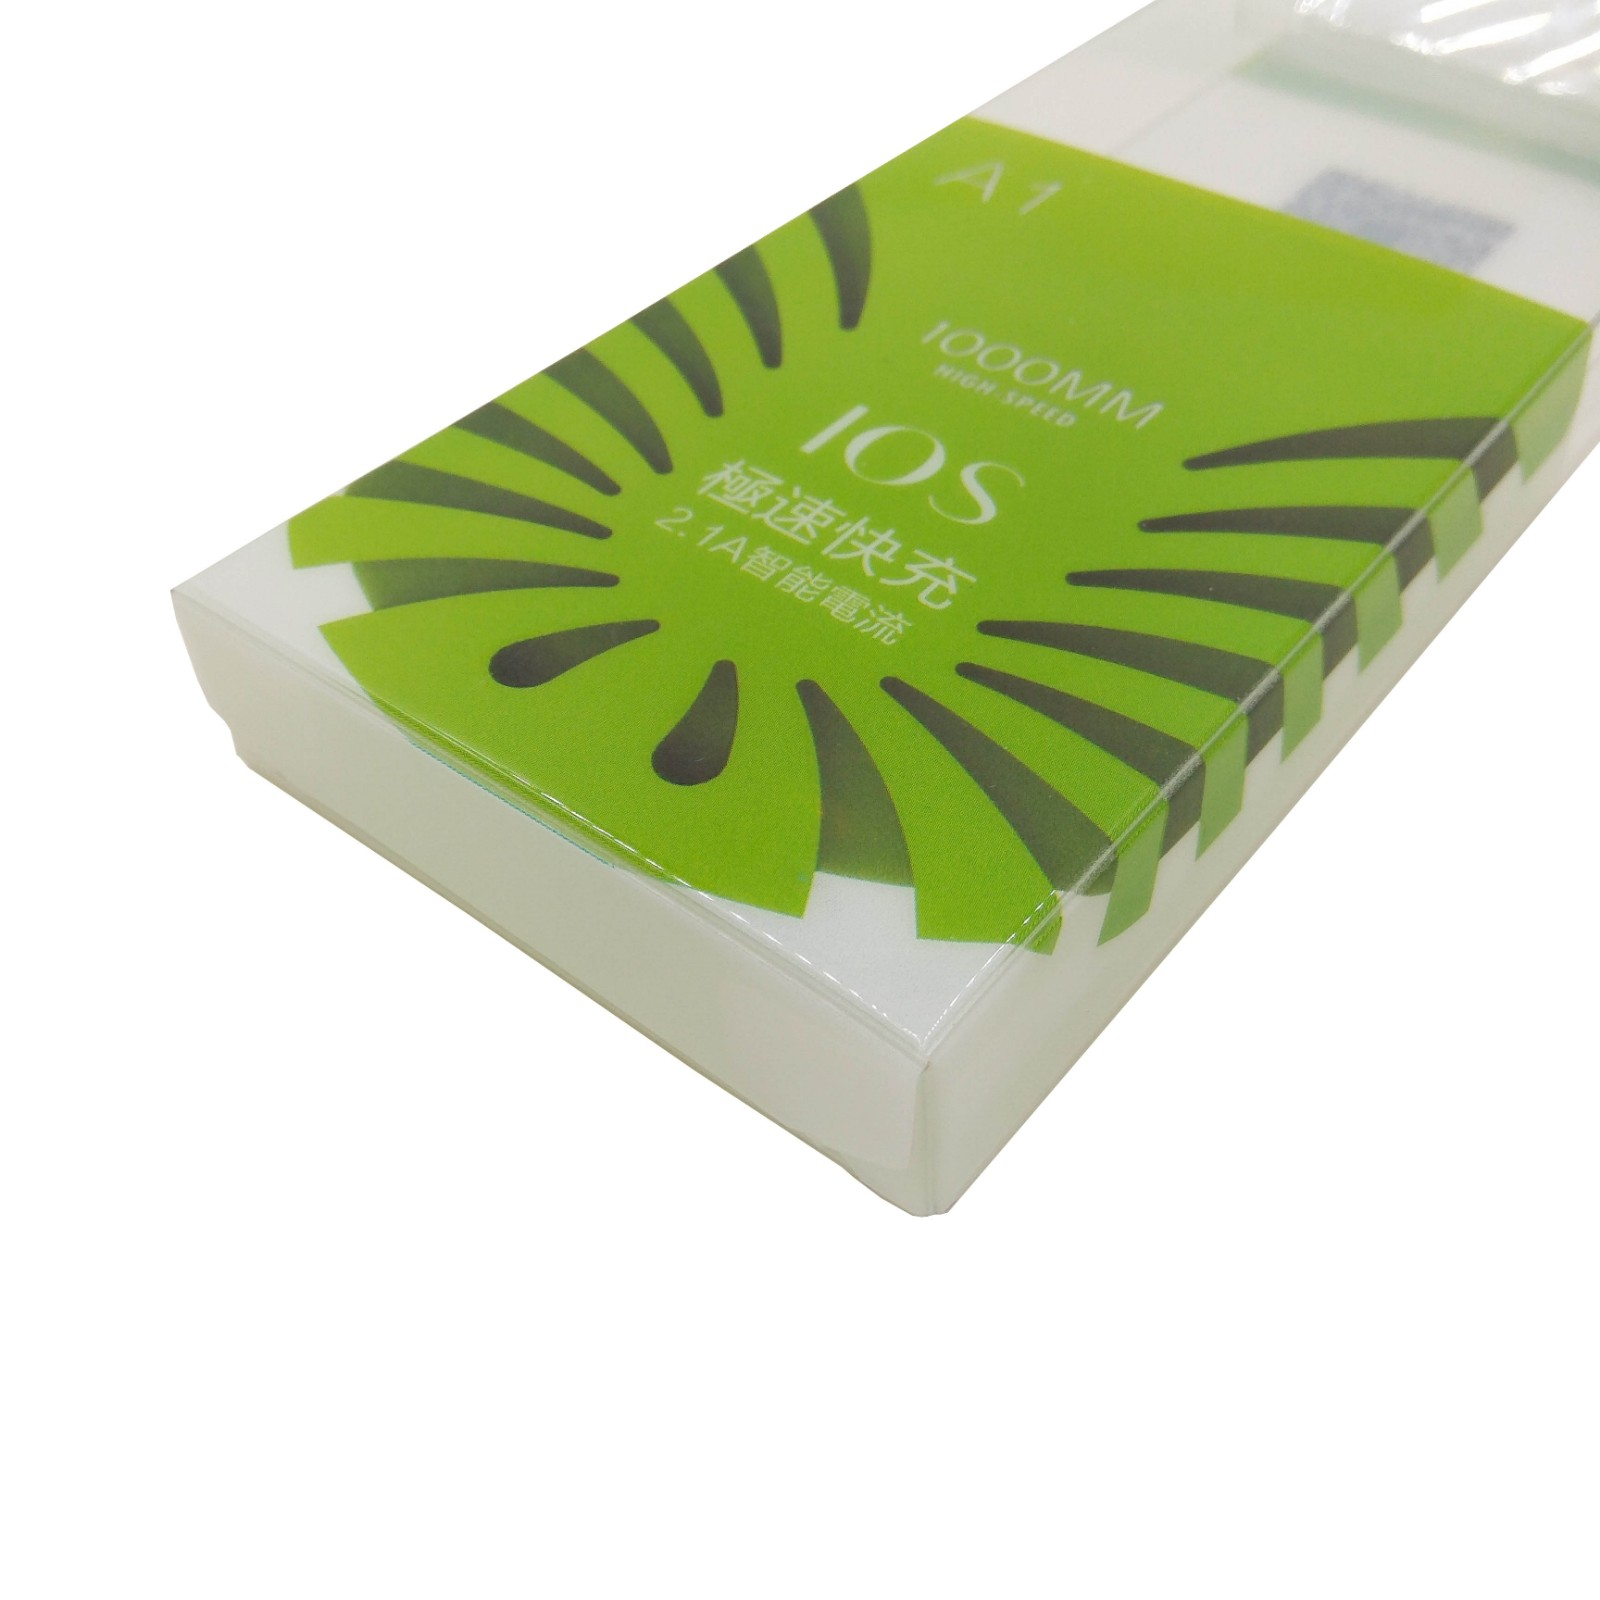 Yijianxing Plastic Products theme plastic box packaging at discount for candy-9